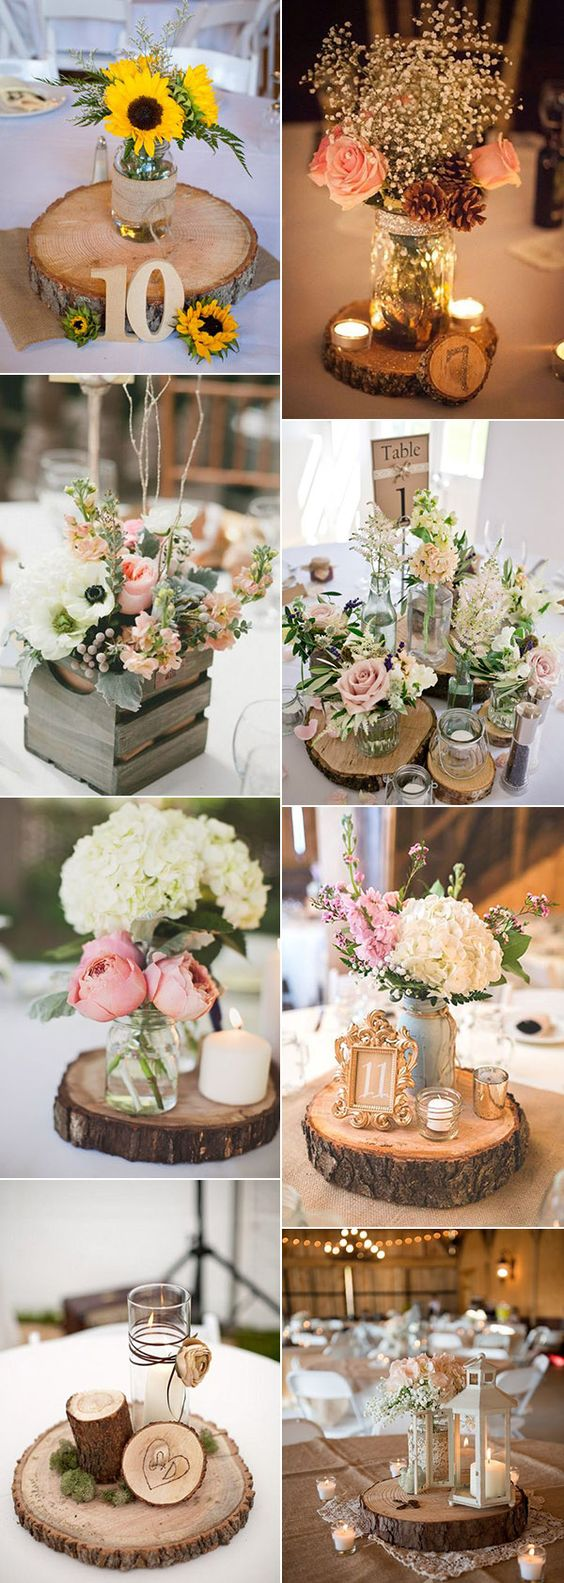 wood themed wedding centerpieces for rustic wedding ideas 2017 trends: